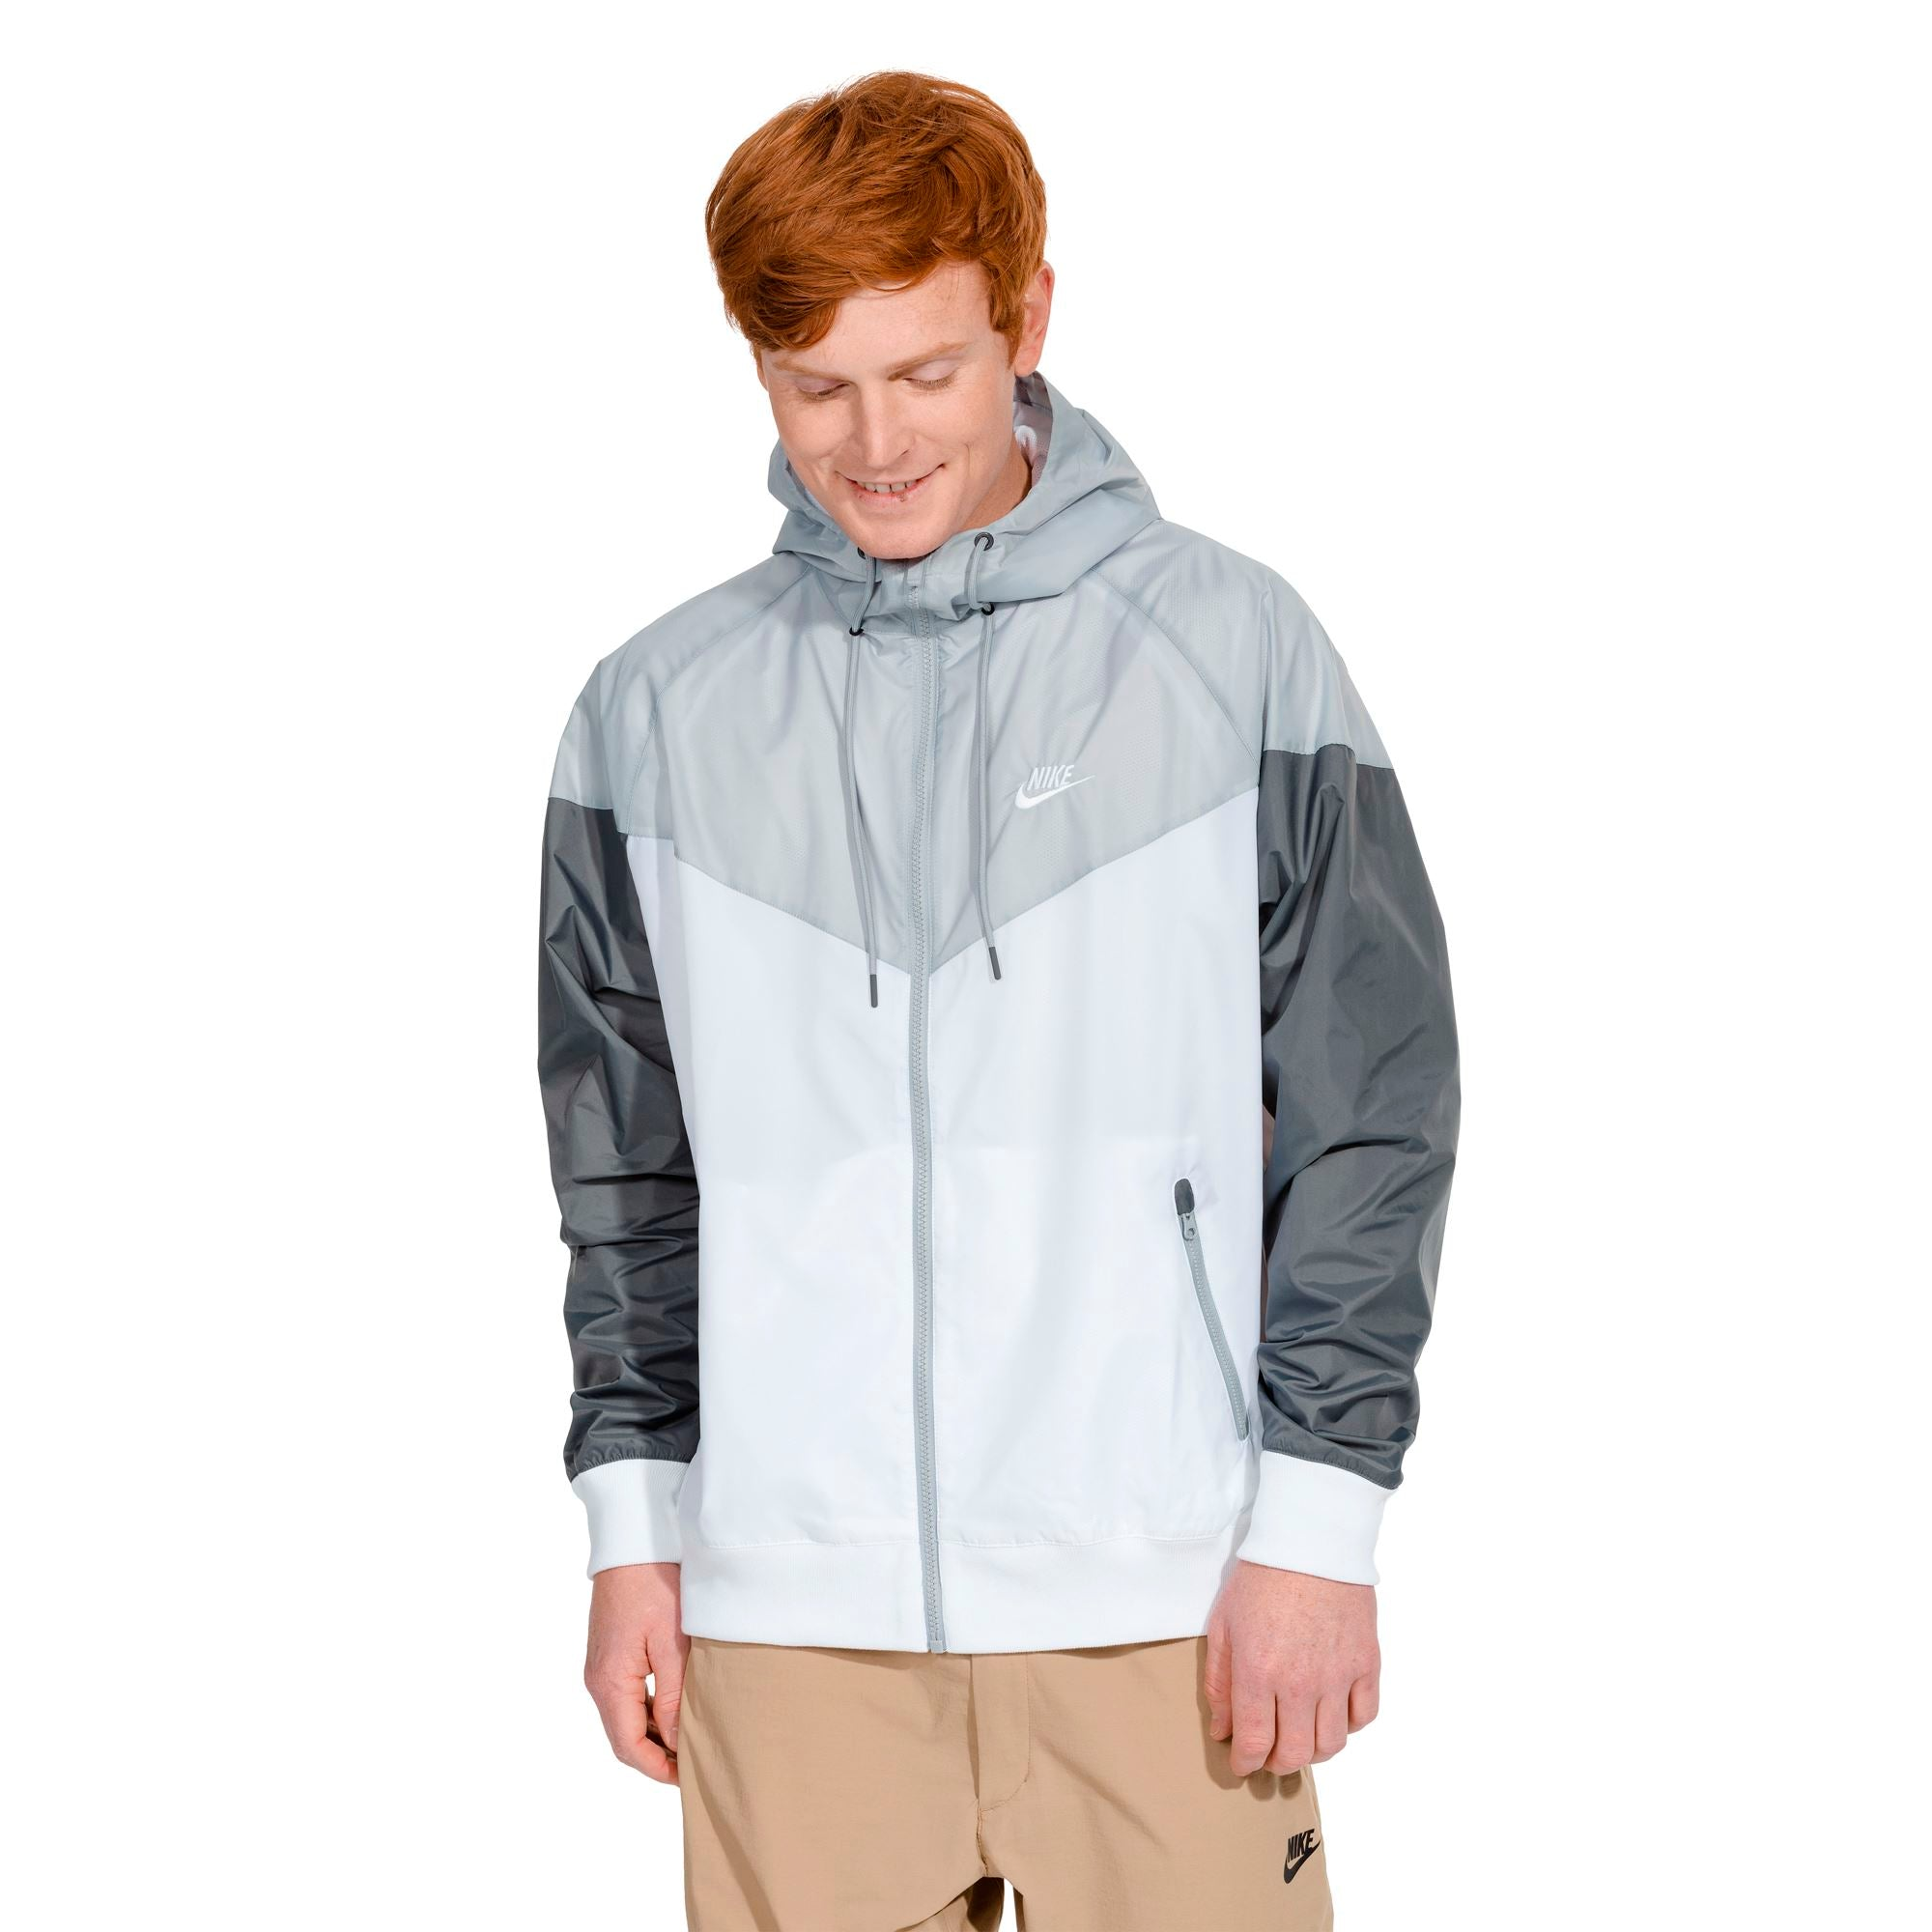 Nike Mens Hooded Windbreaker - White/Wolf Grey/Dark Grey SP-ApparelJackets-Mens Nike